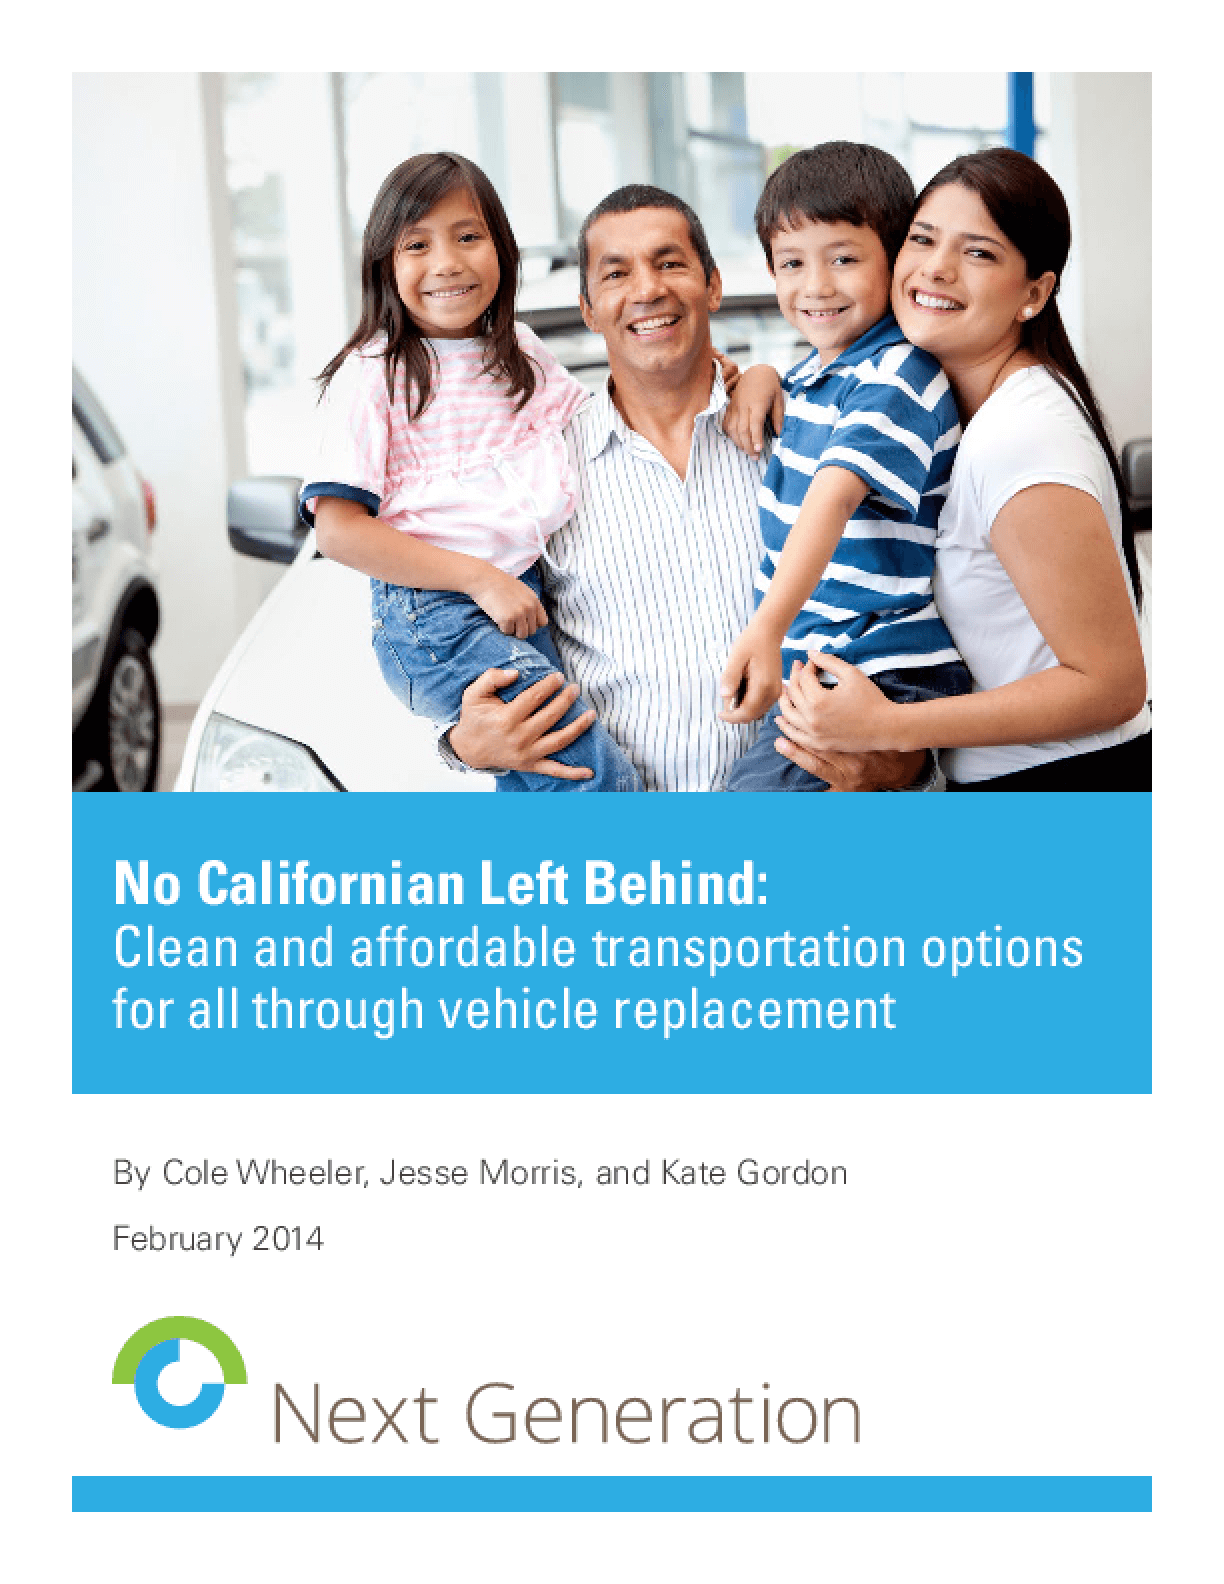 No Californian Left Behind: Clean and Affordable Transportation Options for All Through Vehicle Replacement